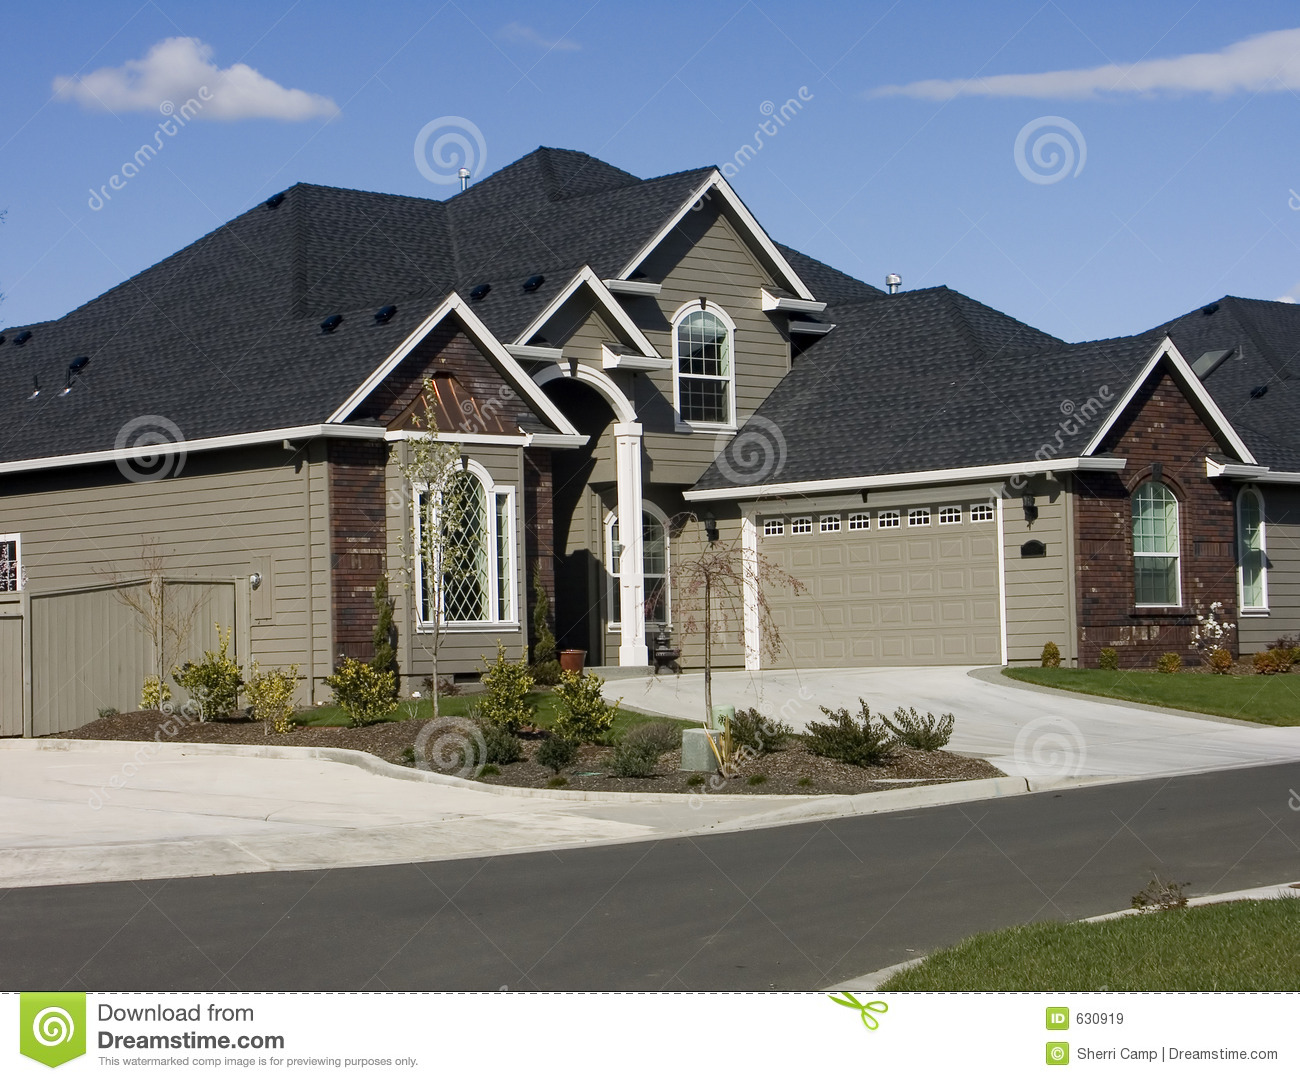 New modern american house royalty free stock images for New homes america